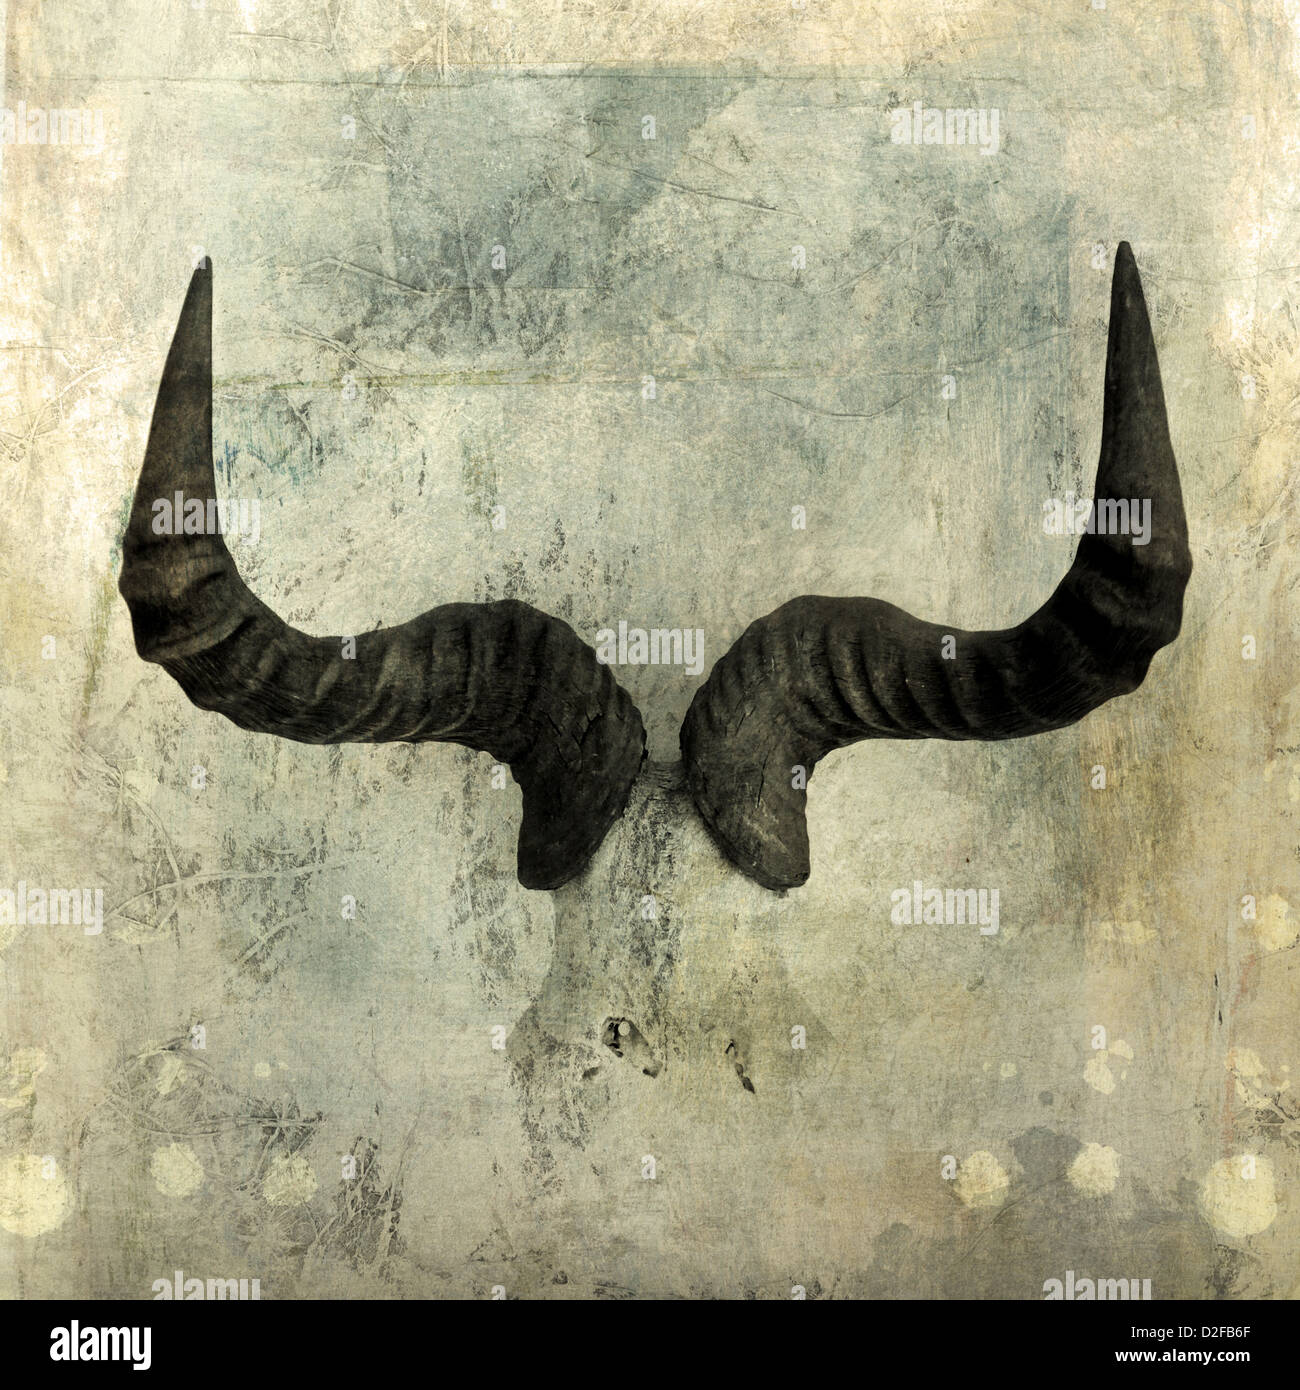 Wildebeest Horns. Photo based illustration. - Stock Image